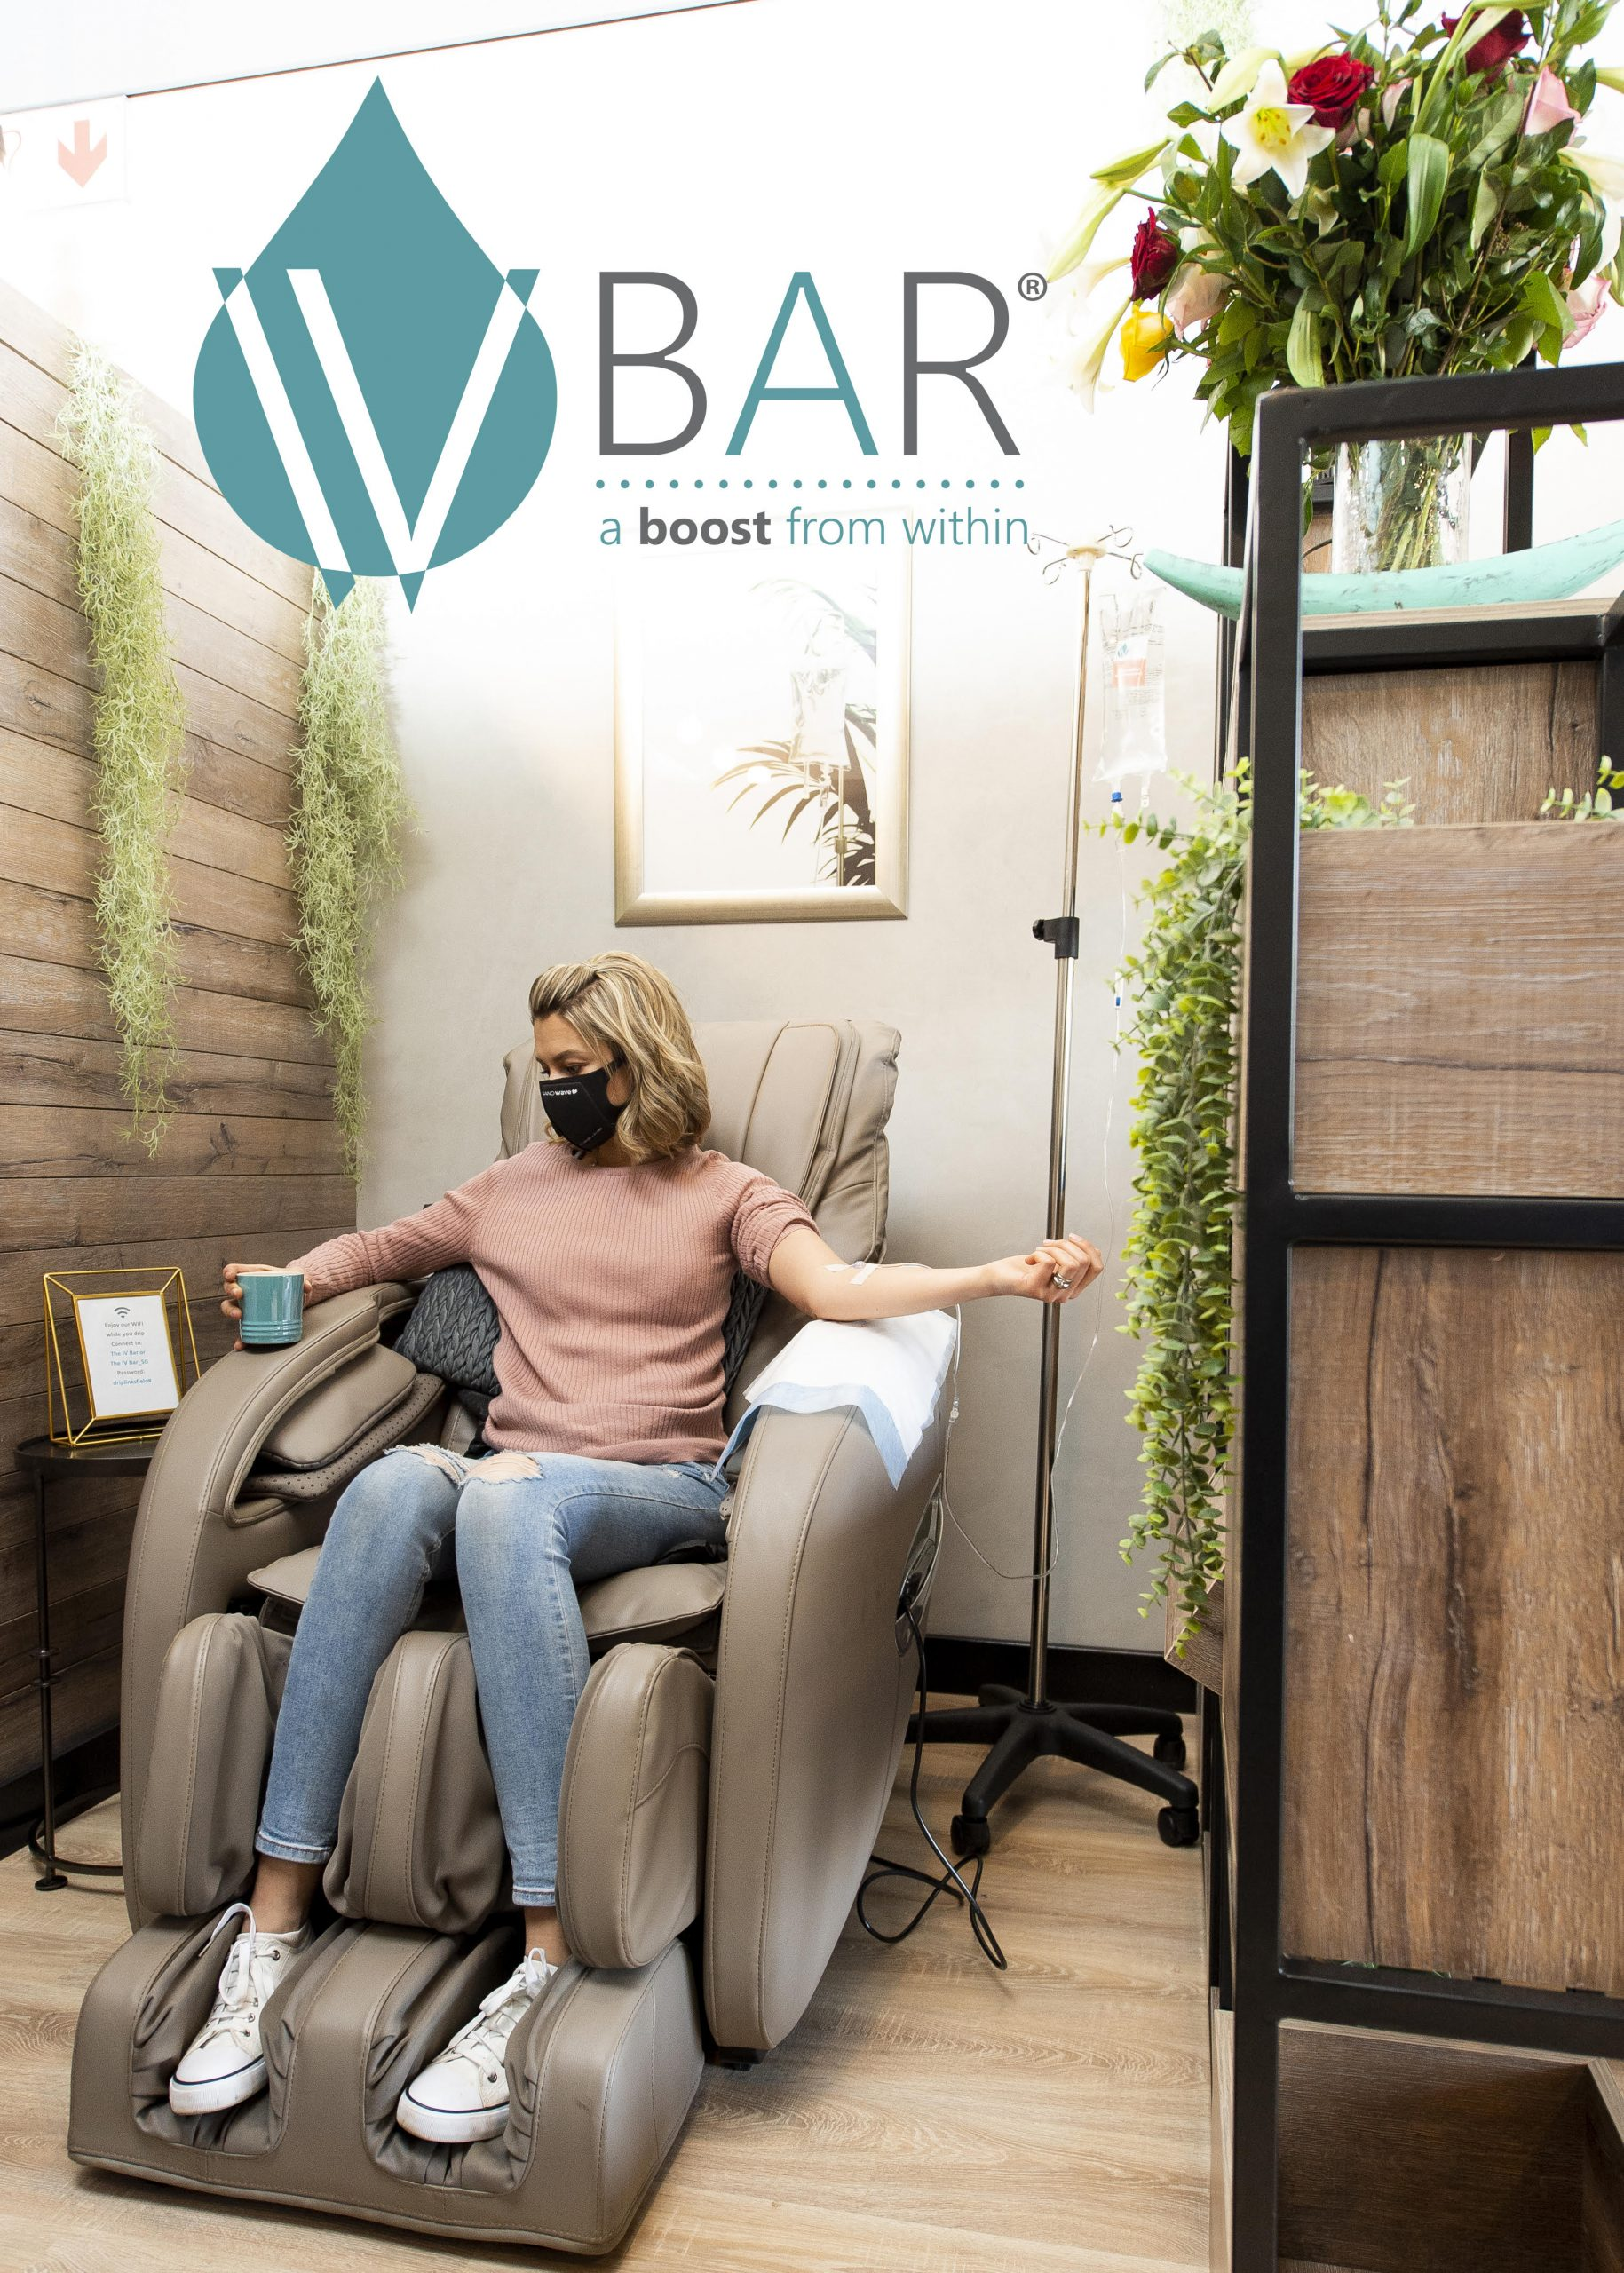 The IV Bar